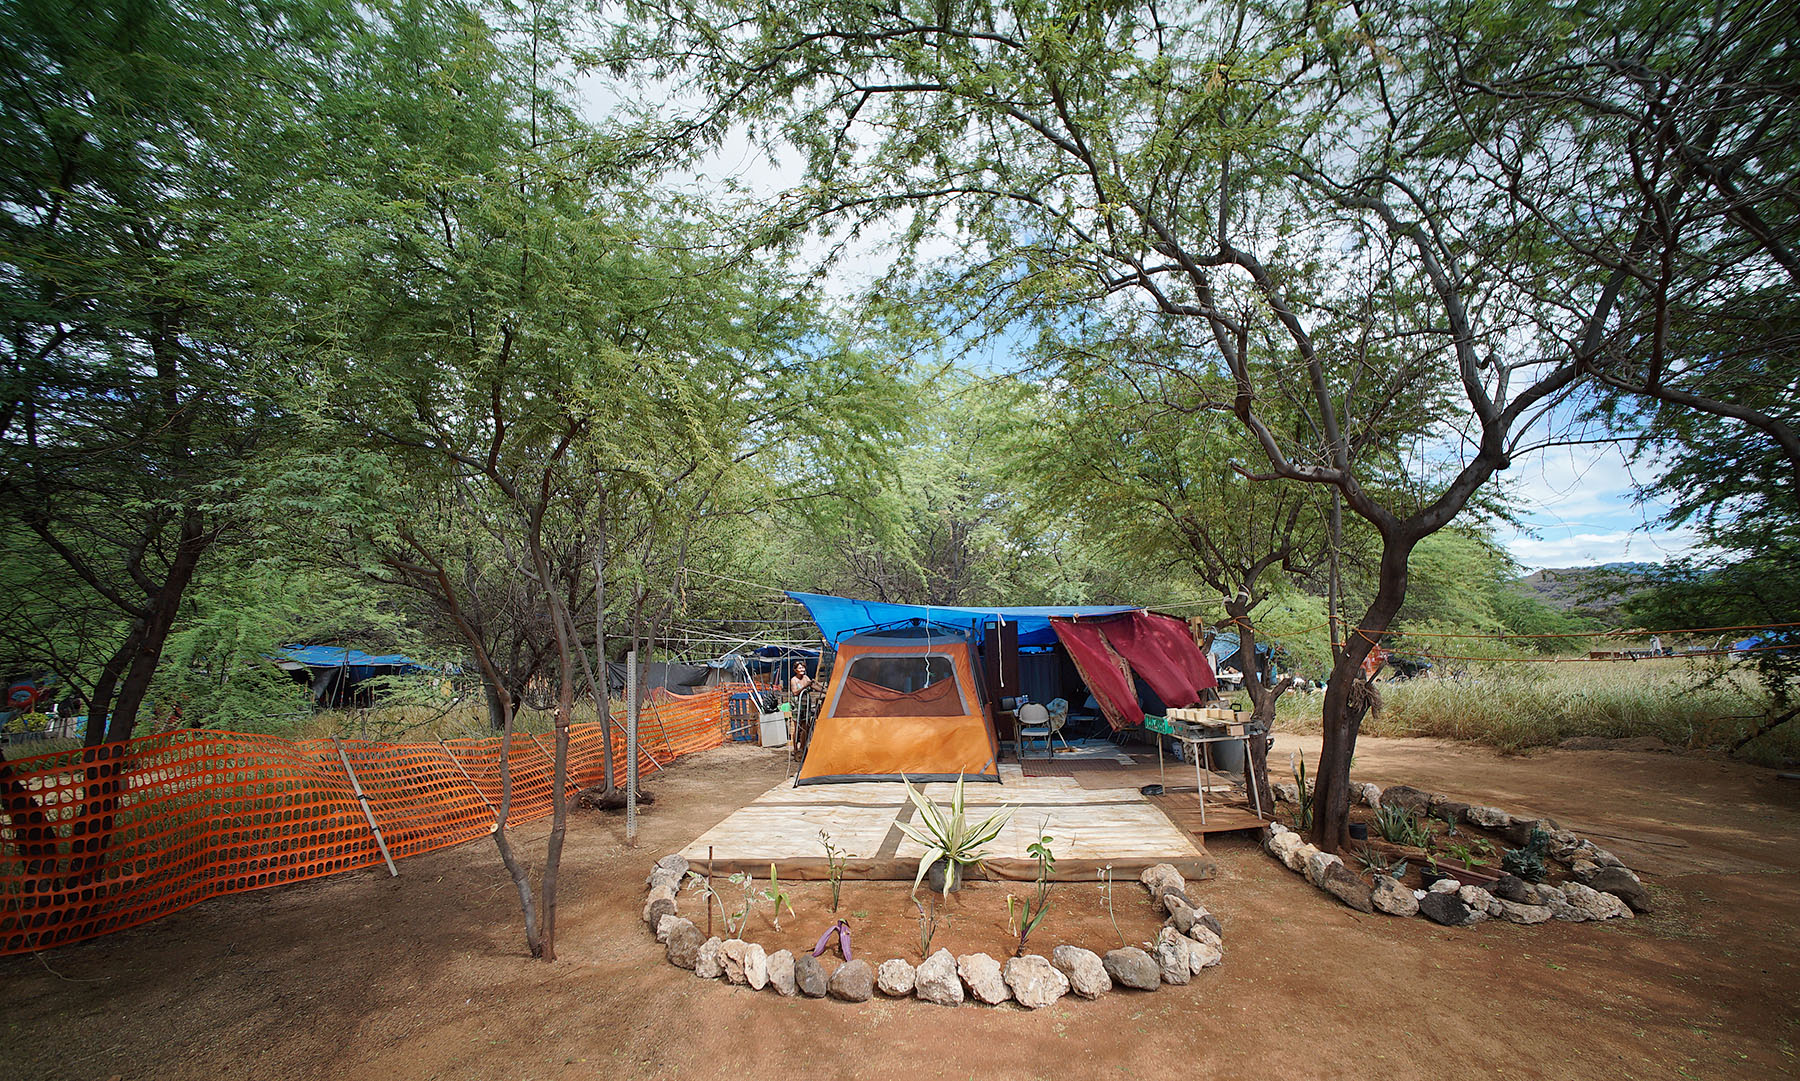 Margaret Bickell spent hundreds of hours working on the structure and landscaping around her tent. photograph Cory Lum